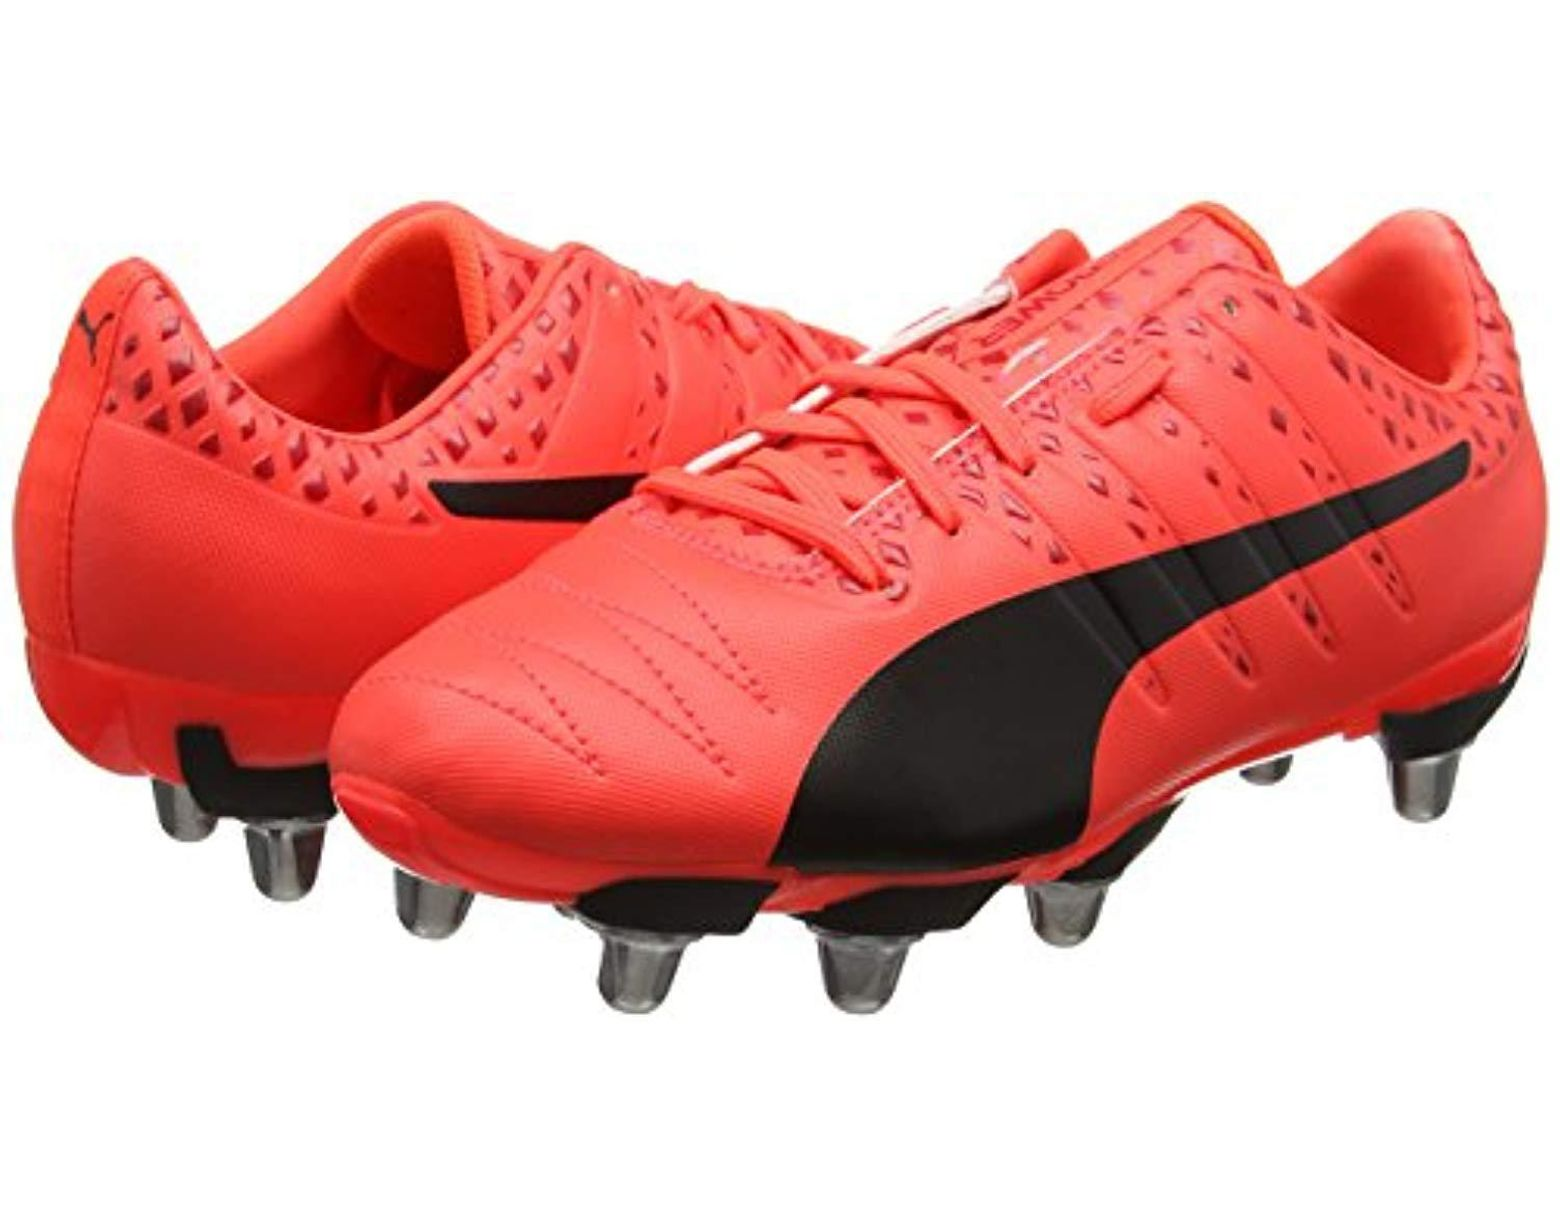 Shoes Rugby Men's H8 Evopower Vigor fy6gYb7